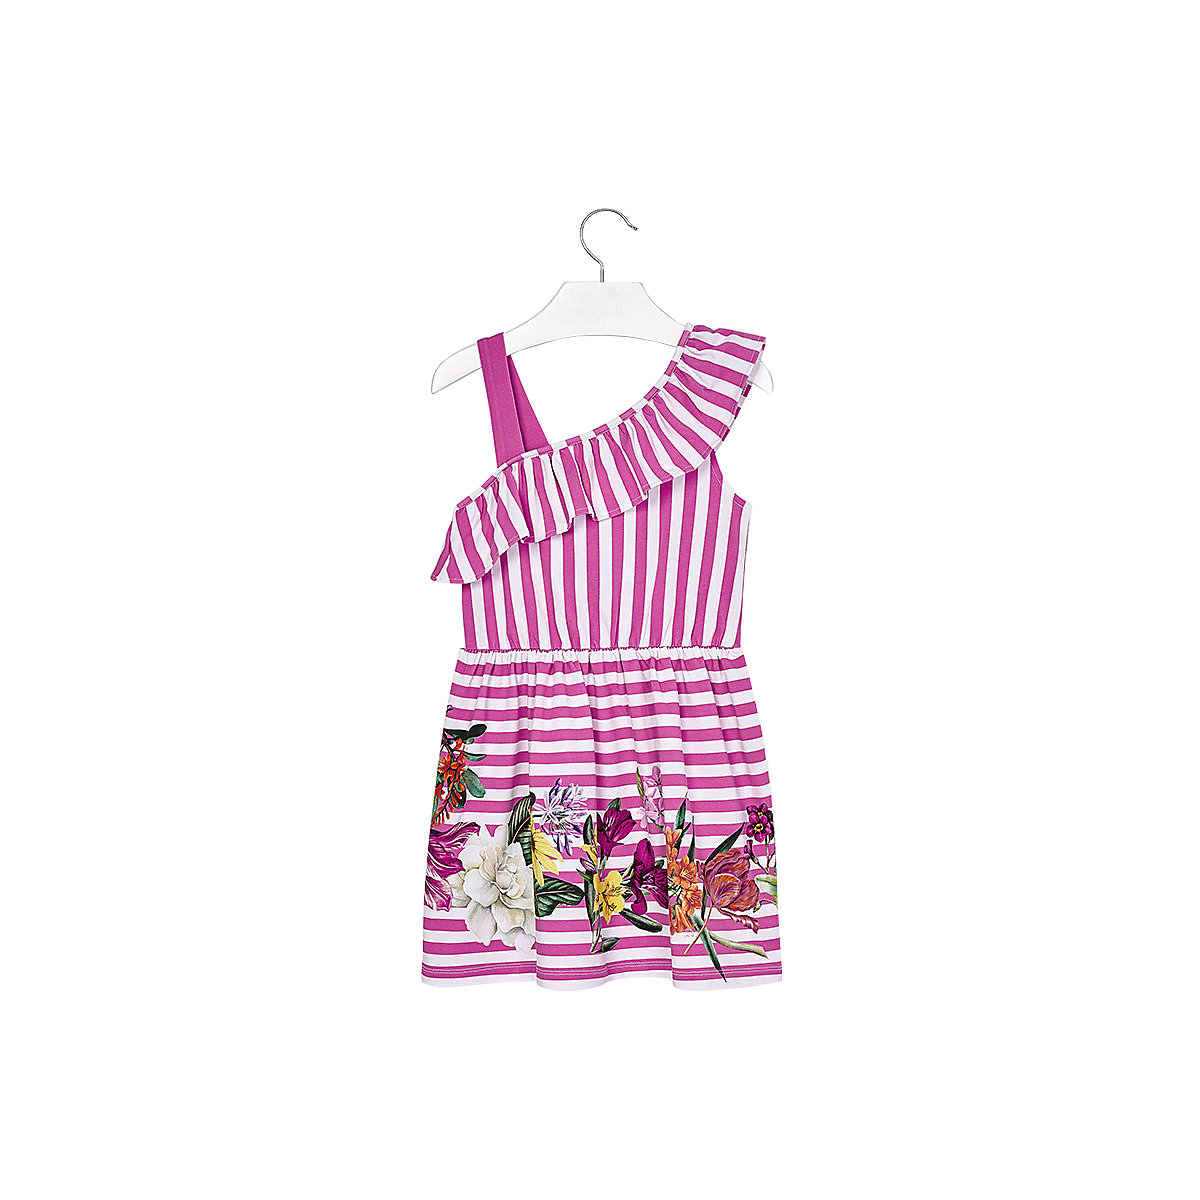 MAYORAL Dresses 10688893 Girl Children fitted pleated skirt Pink Cotton Casual Striped Knee-Length Sleeveless Sleeve striped raglan sleeve floral tee